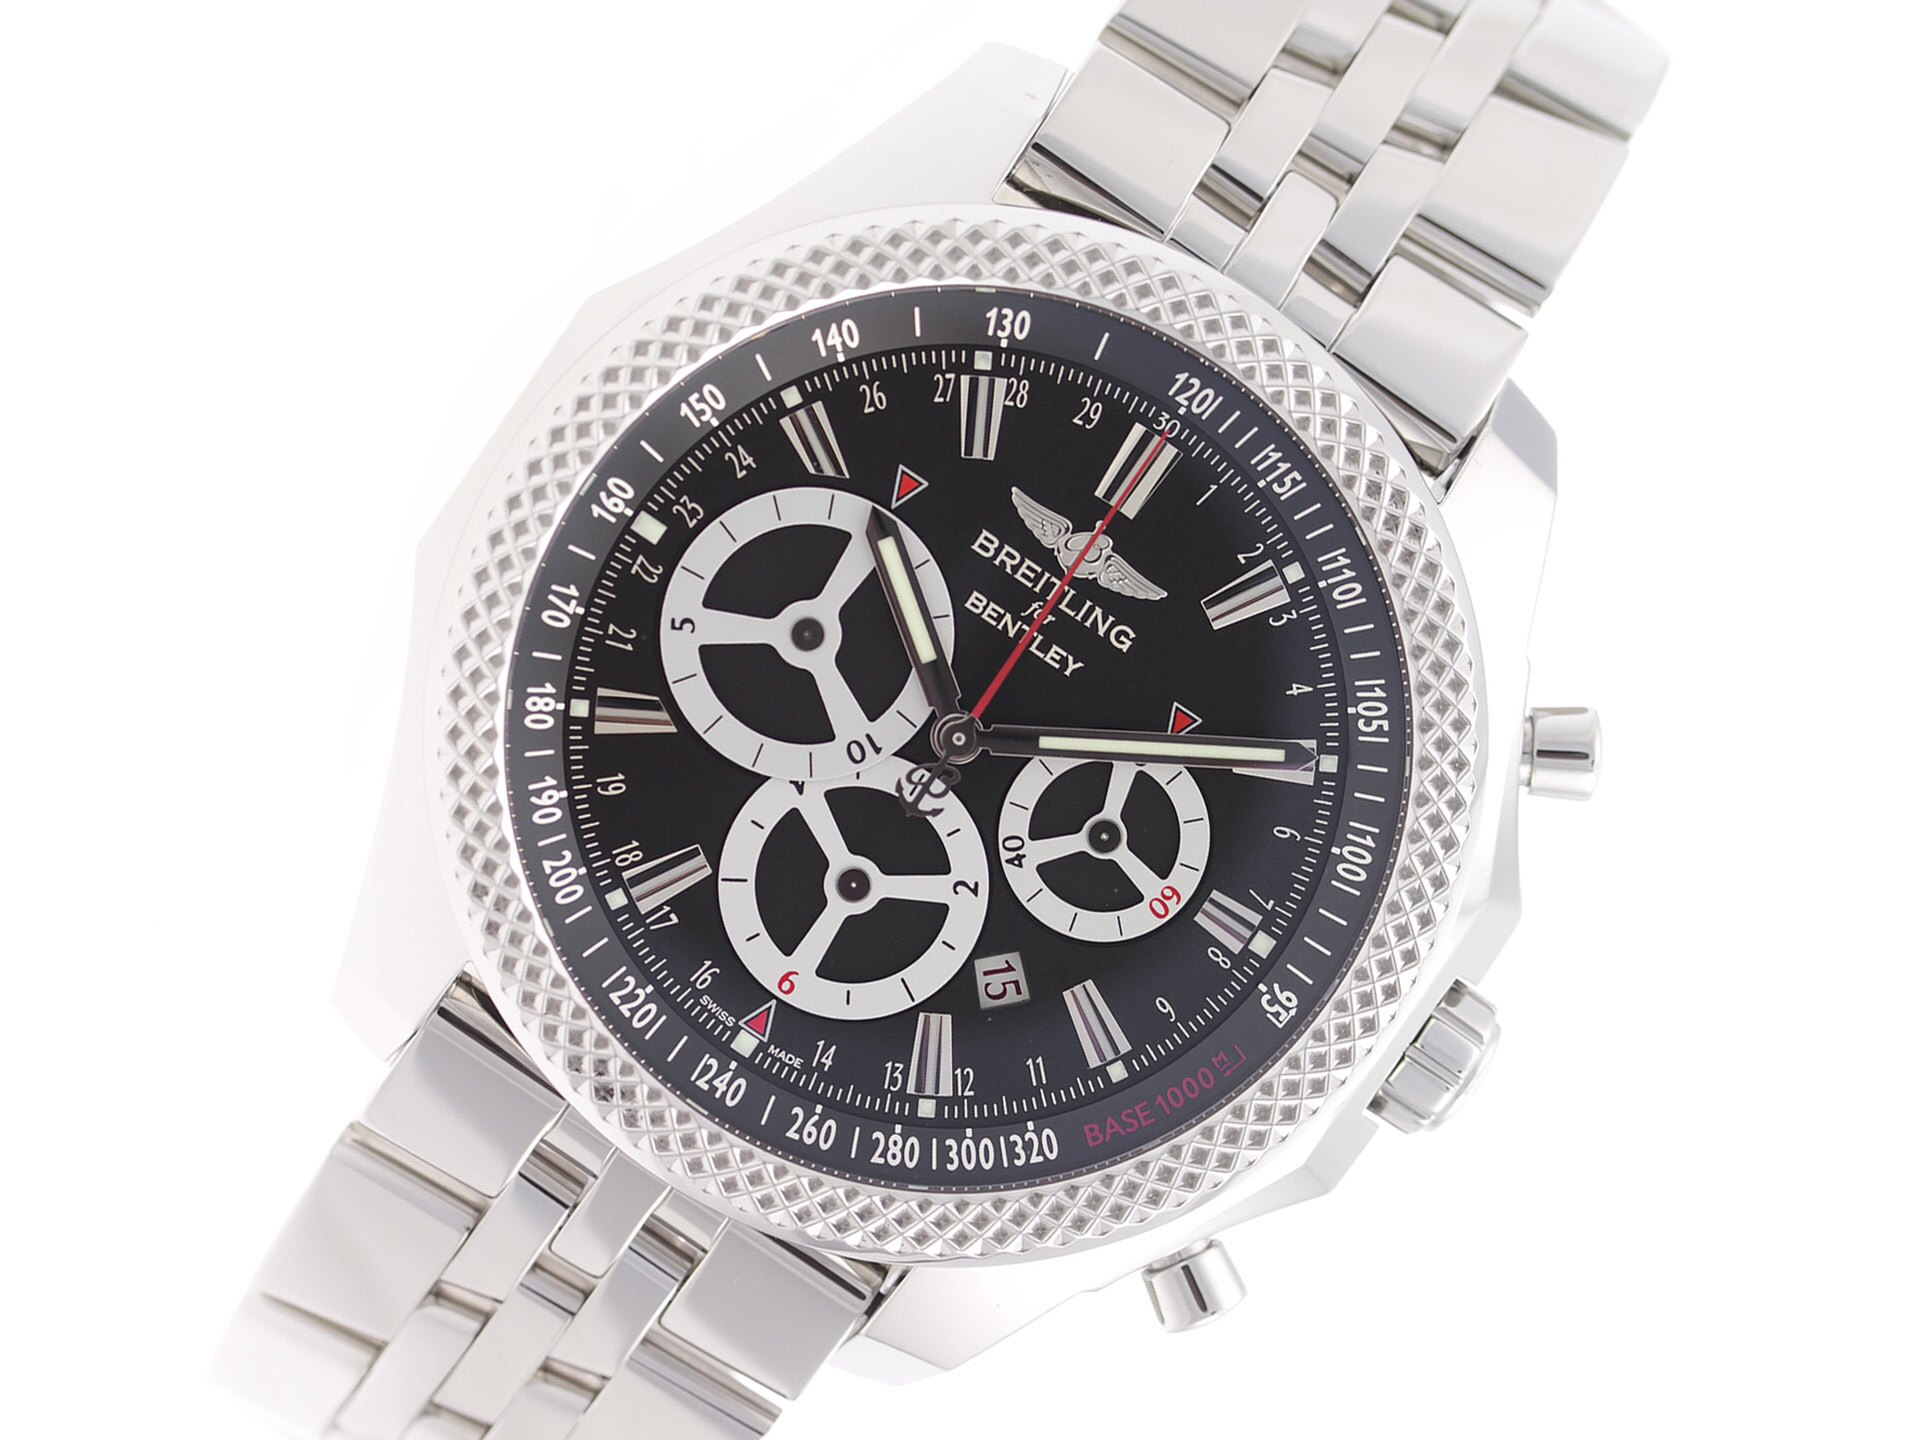 chronograph precision shop barnato bentley precisionwatches rakuten product racing watches breitling